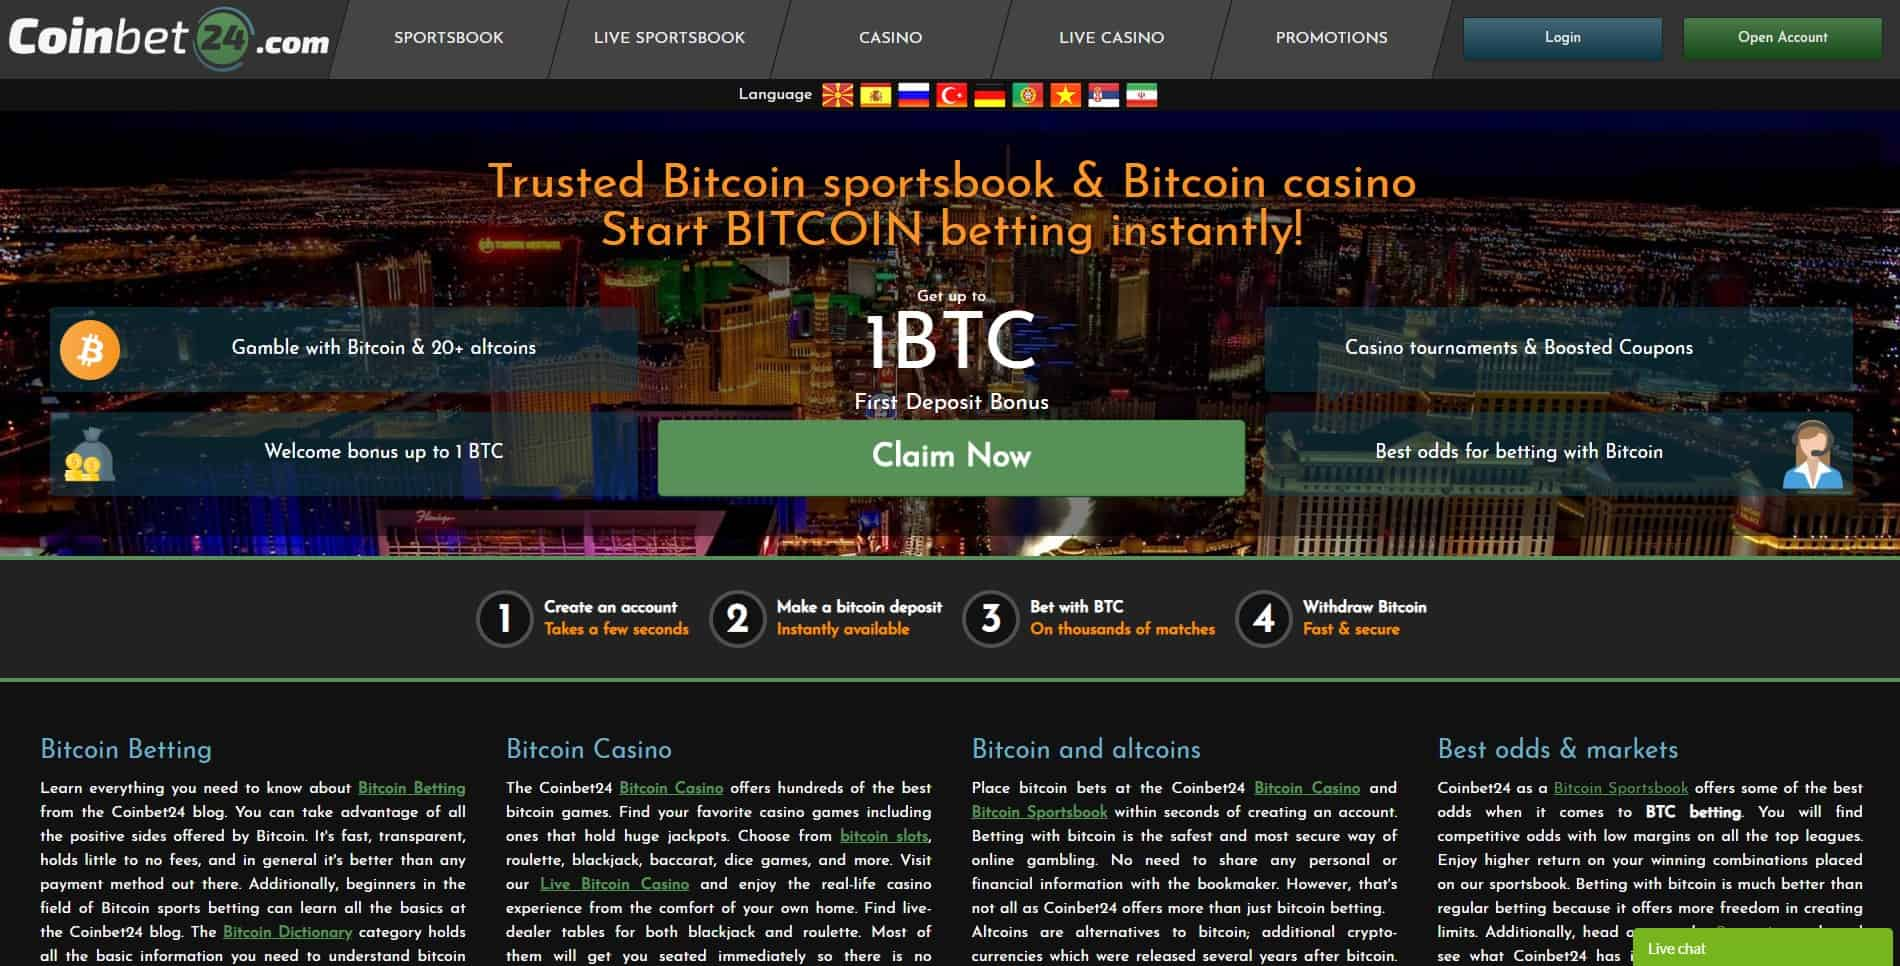 Coinbet24 front page